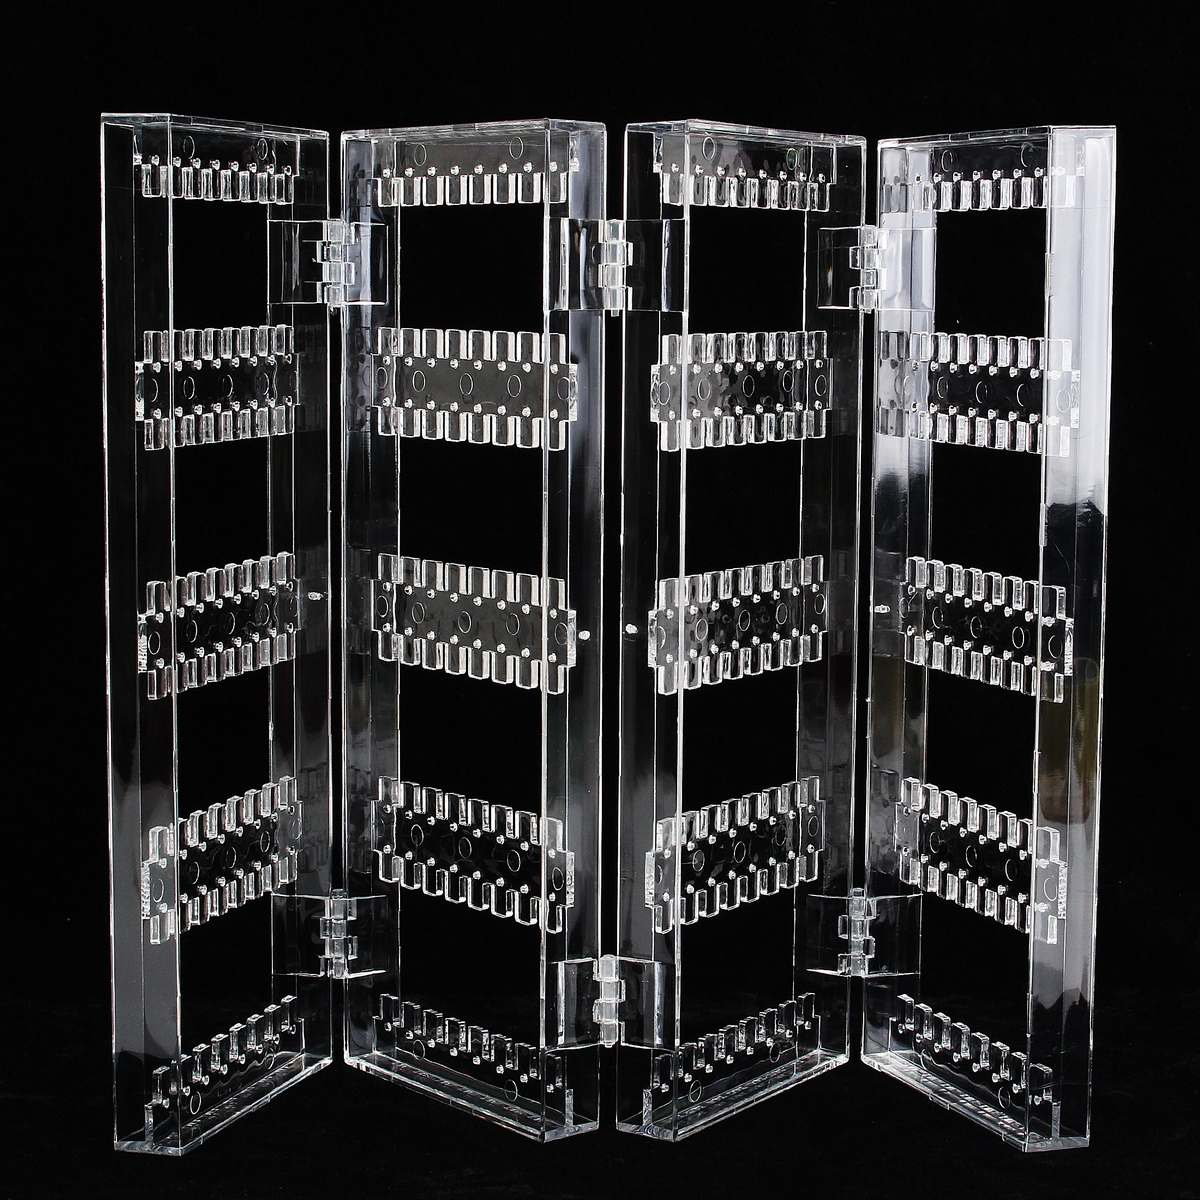 Clear Acrylic Earrings Ear Studs Necklace Display Rack Multifunctional Folding Screen Earring Jewelry Display Stand Holder Box